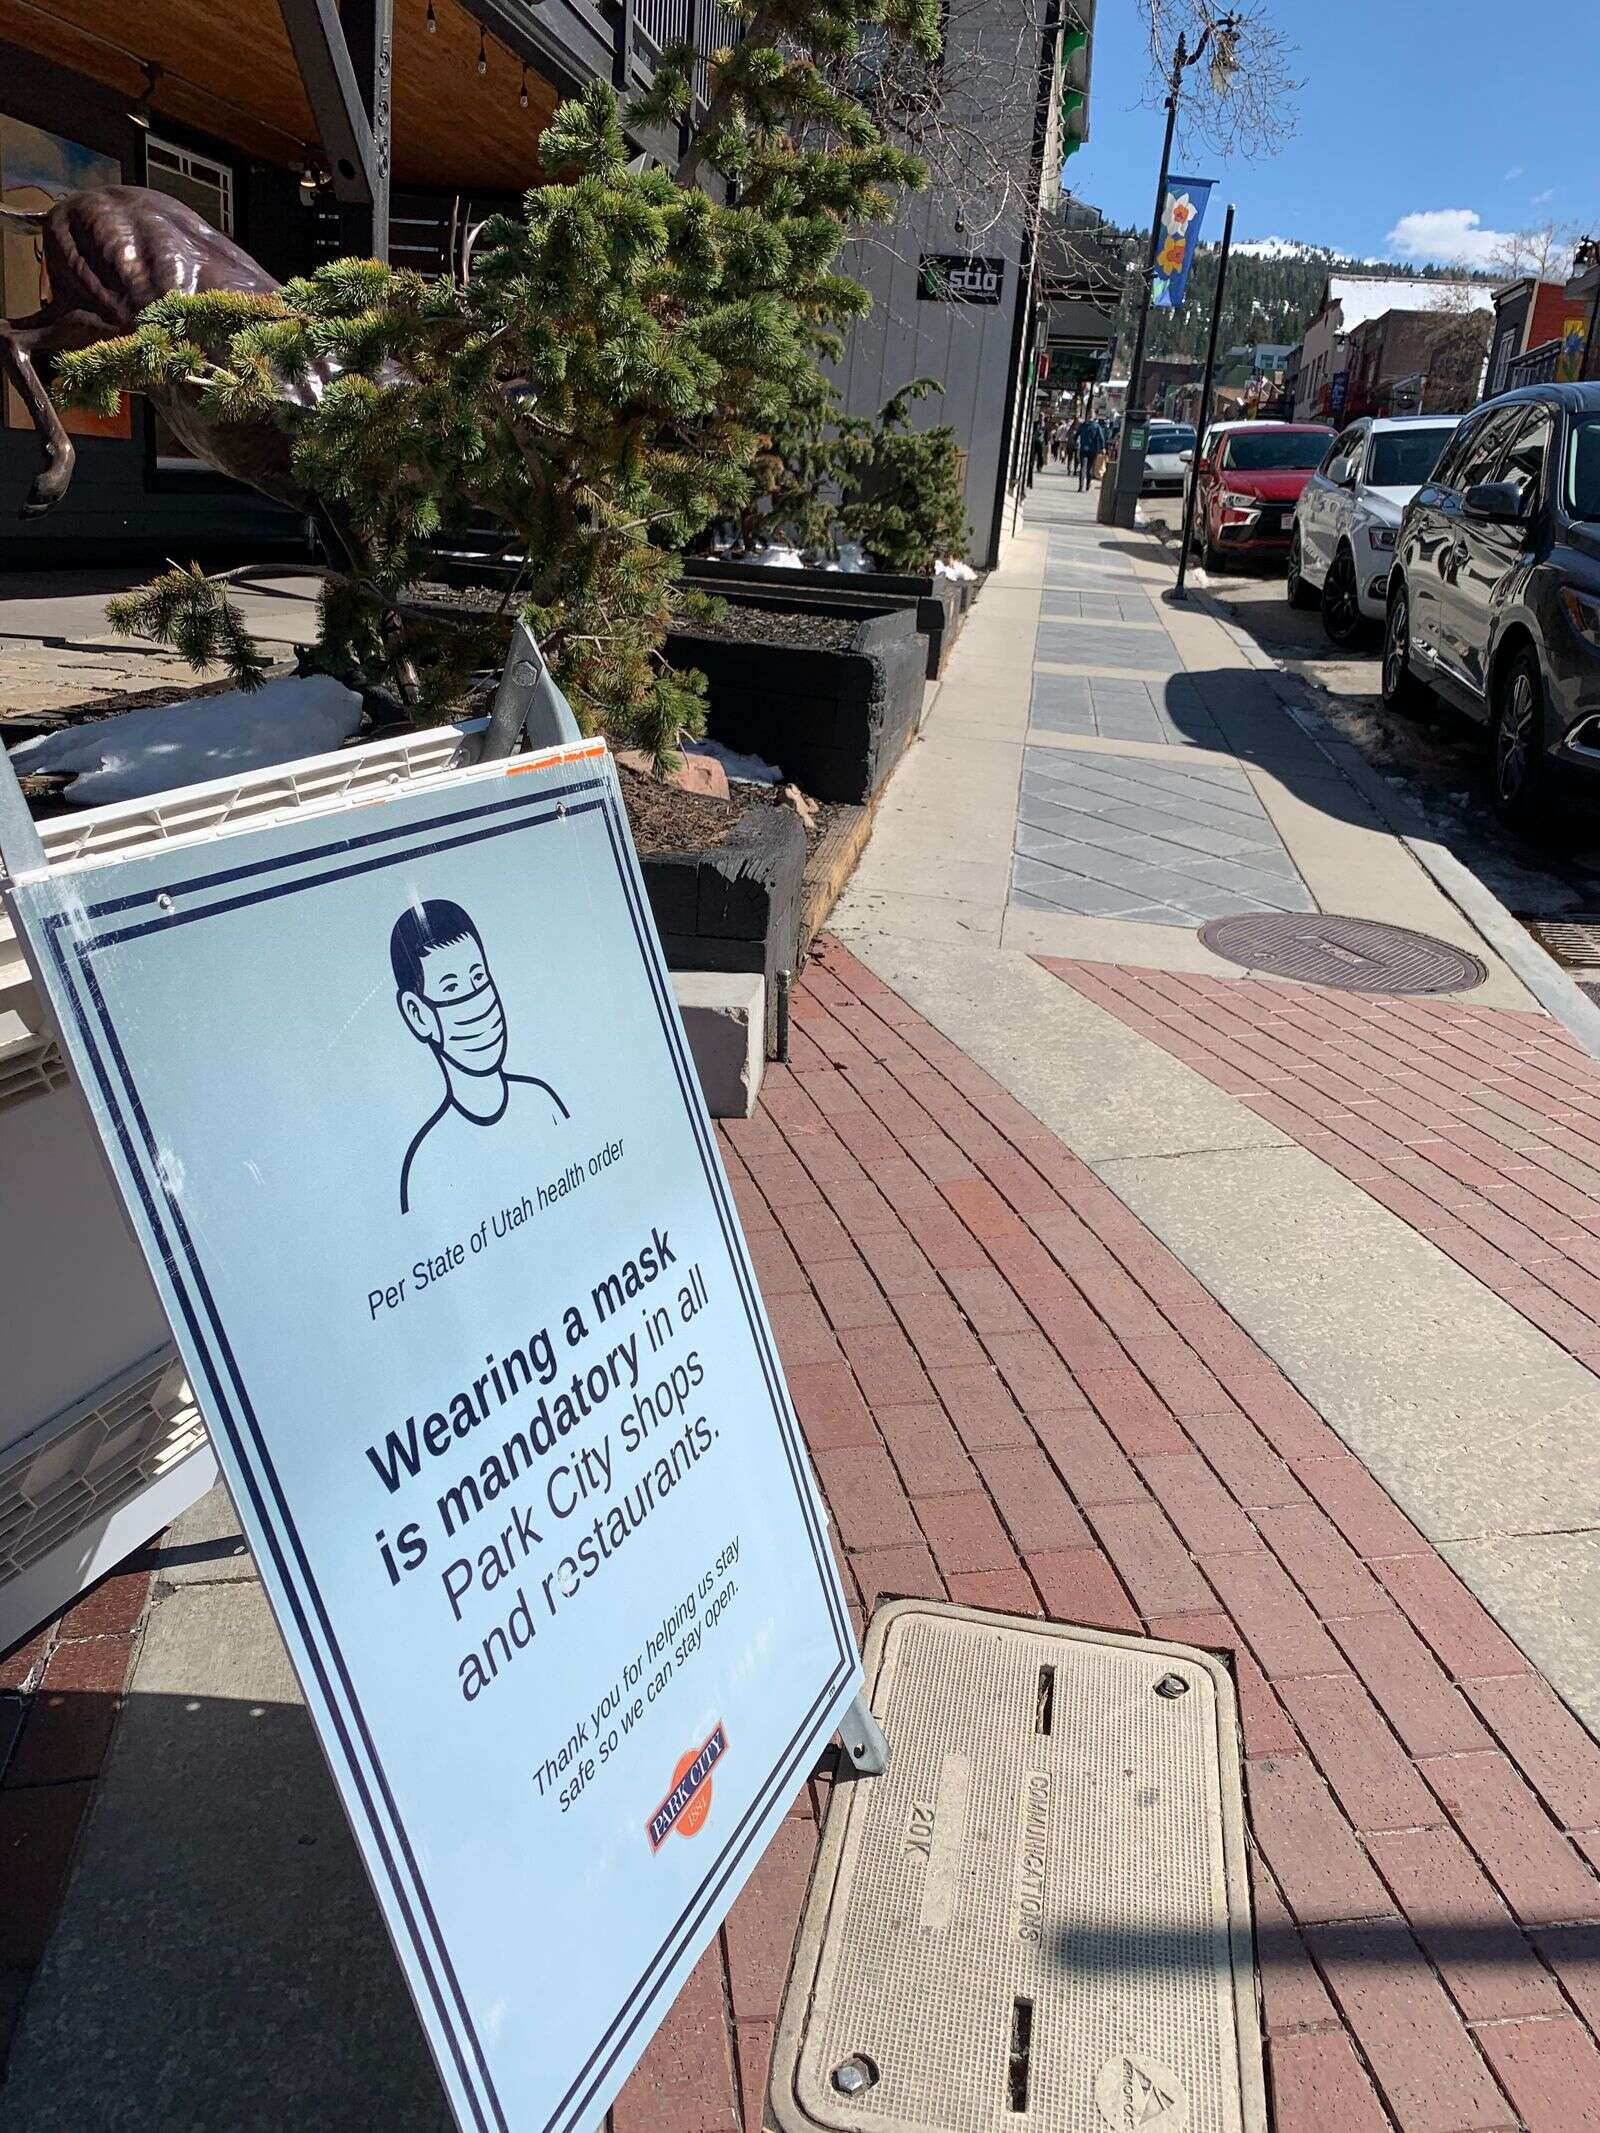 Park City advertises a mask mandate when there is none, potentially leading to confusion